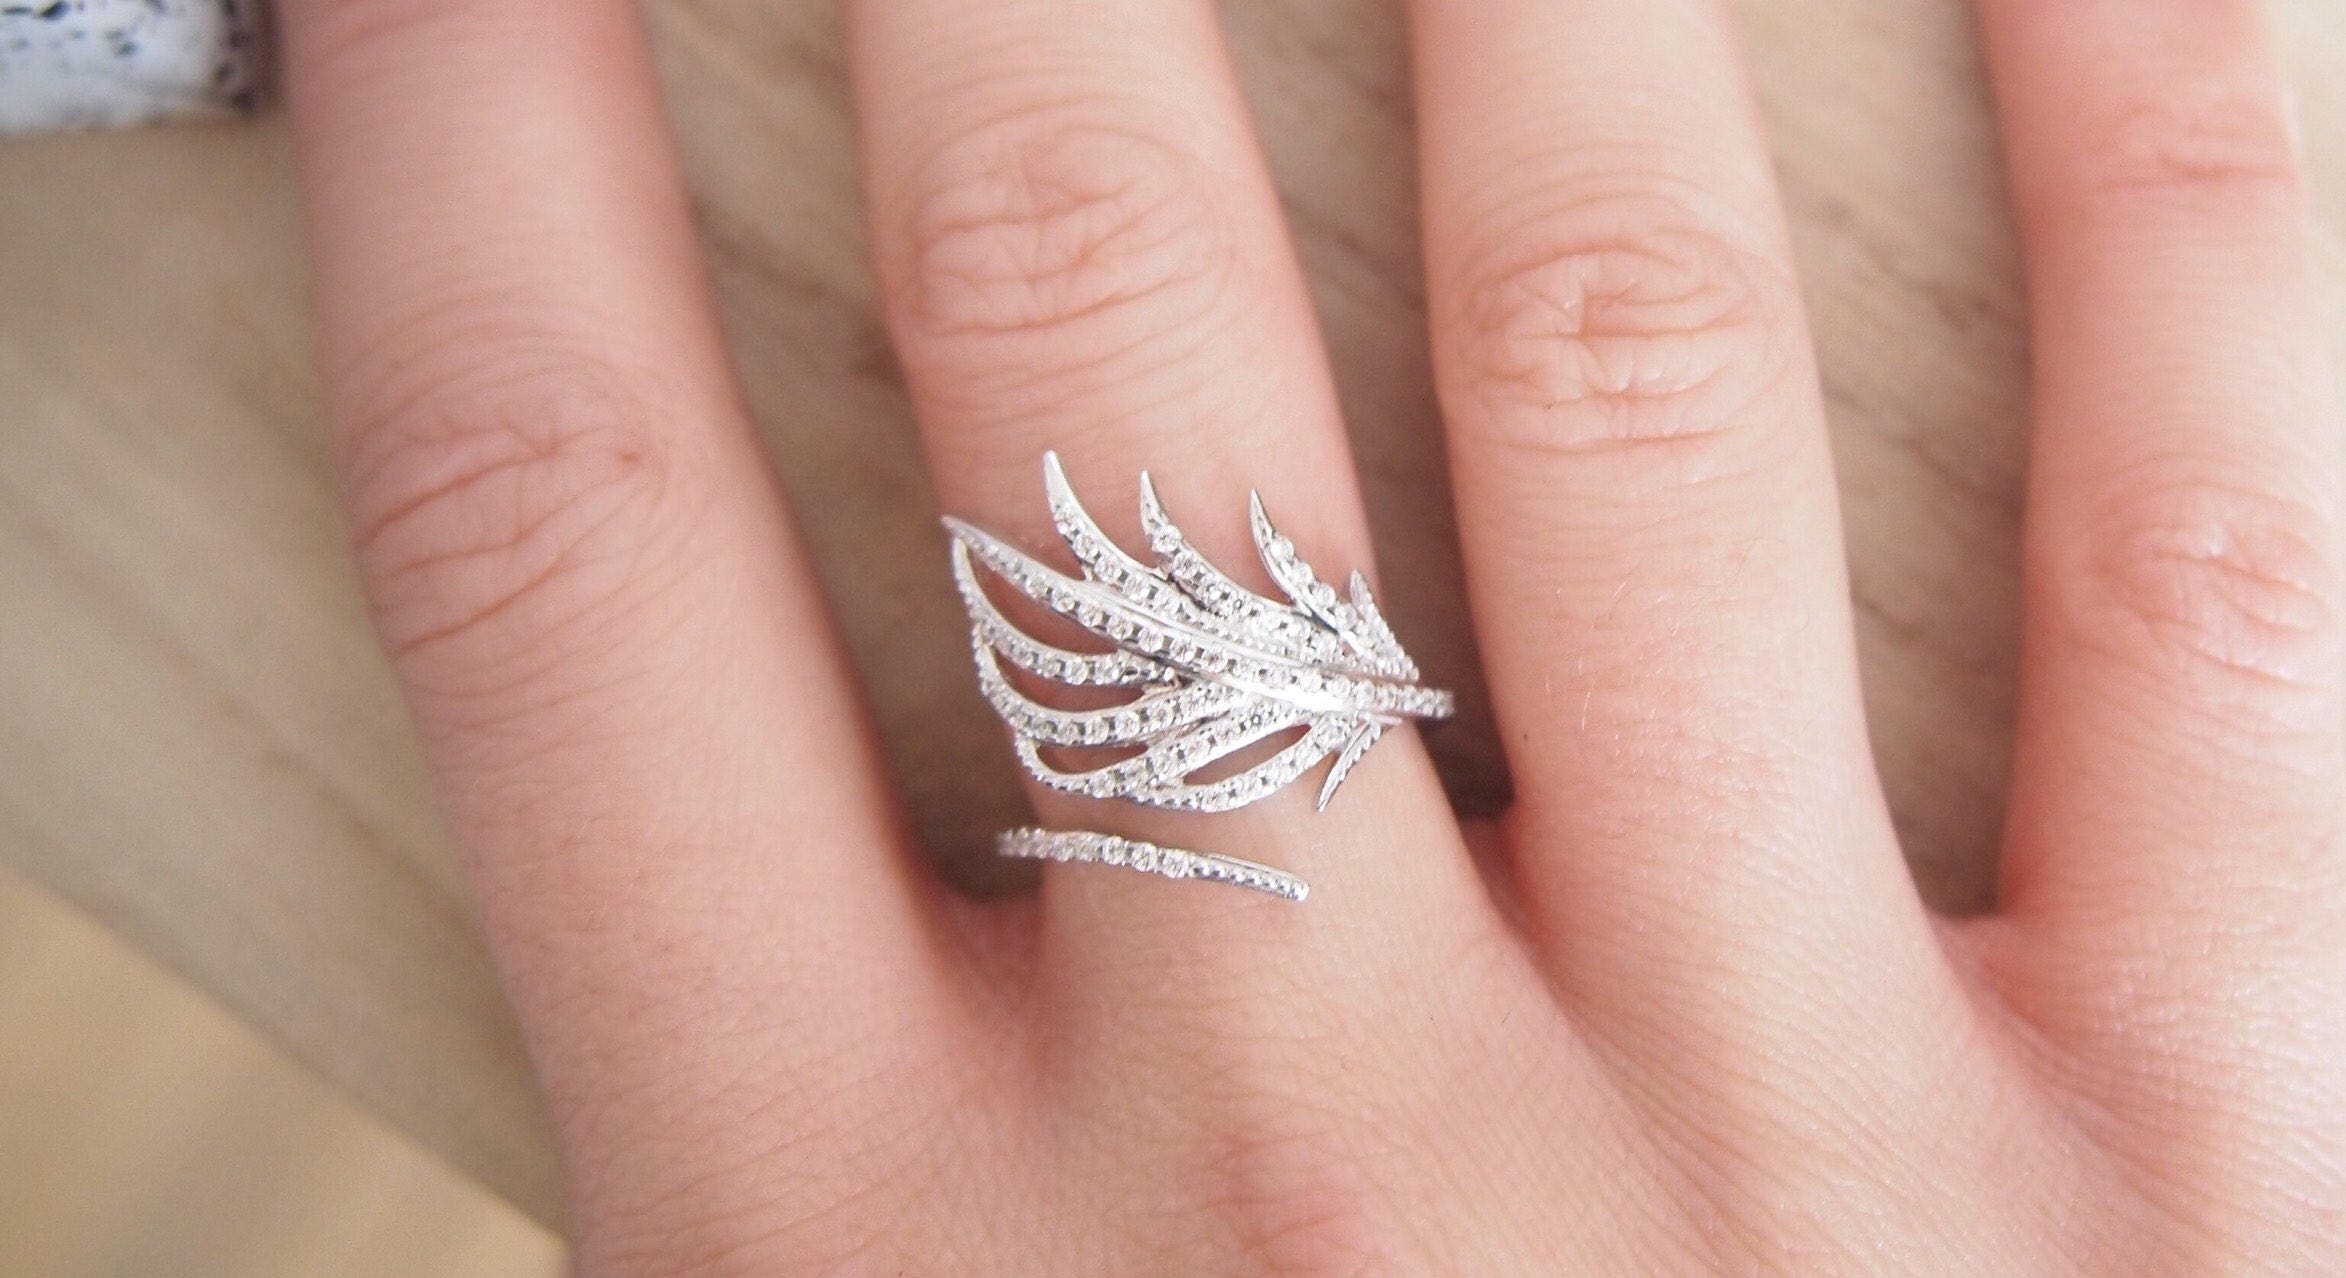 Leaf ring oxide of zirconium and Silver 925 sterling silver